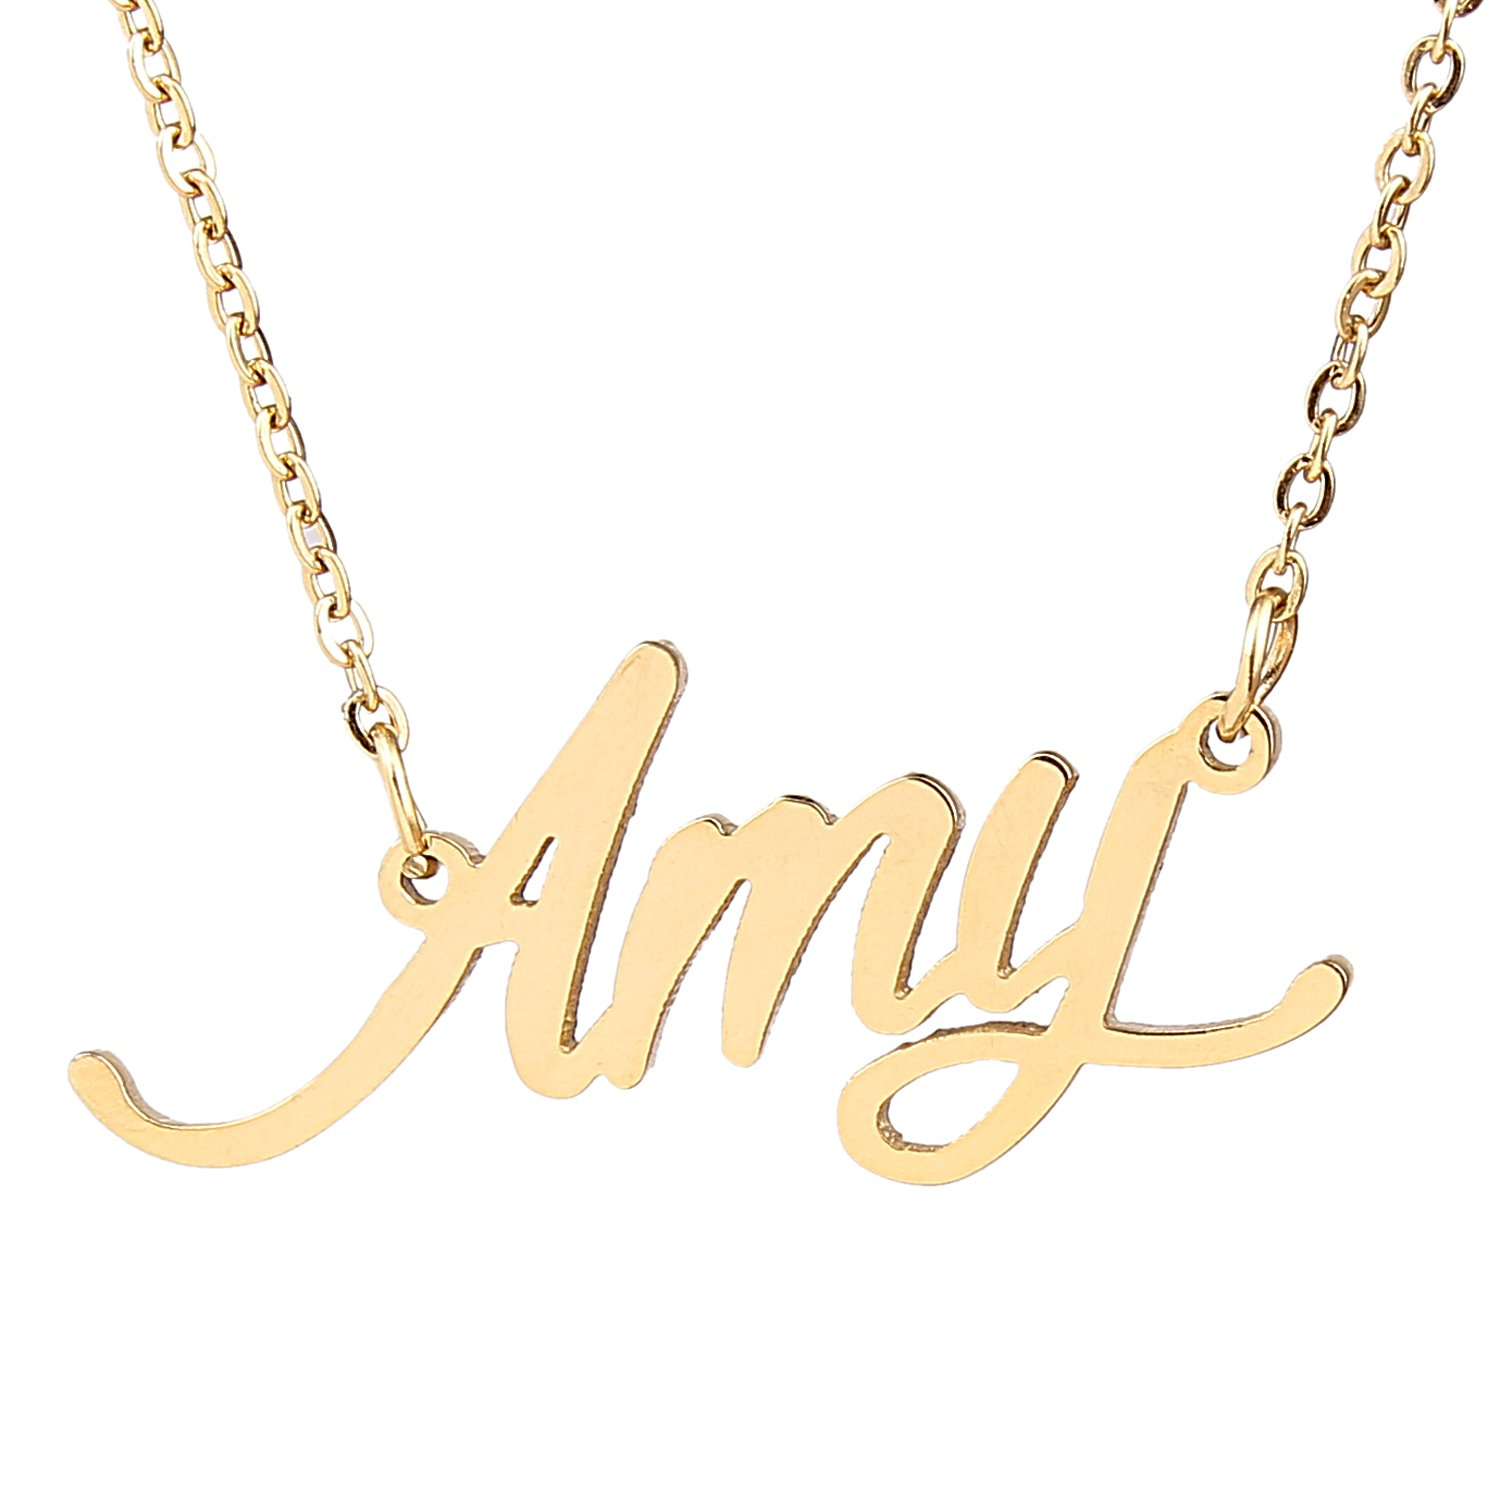 hand bar cursive gold handmade img necklace name stamped jewelry necklaces